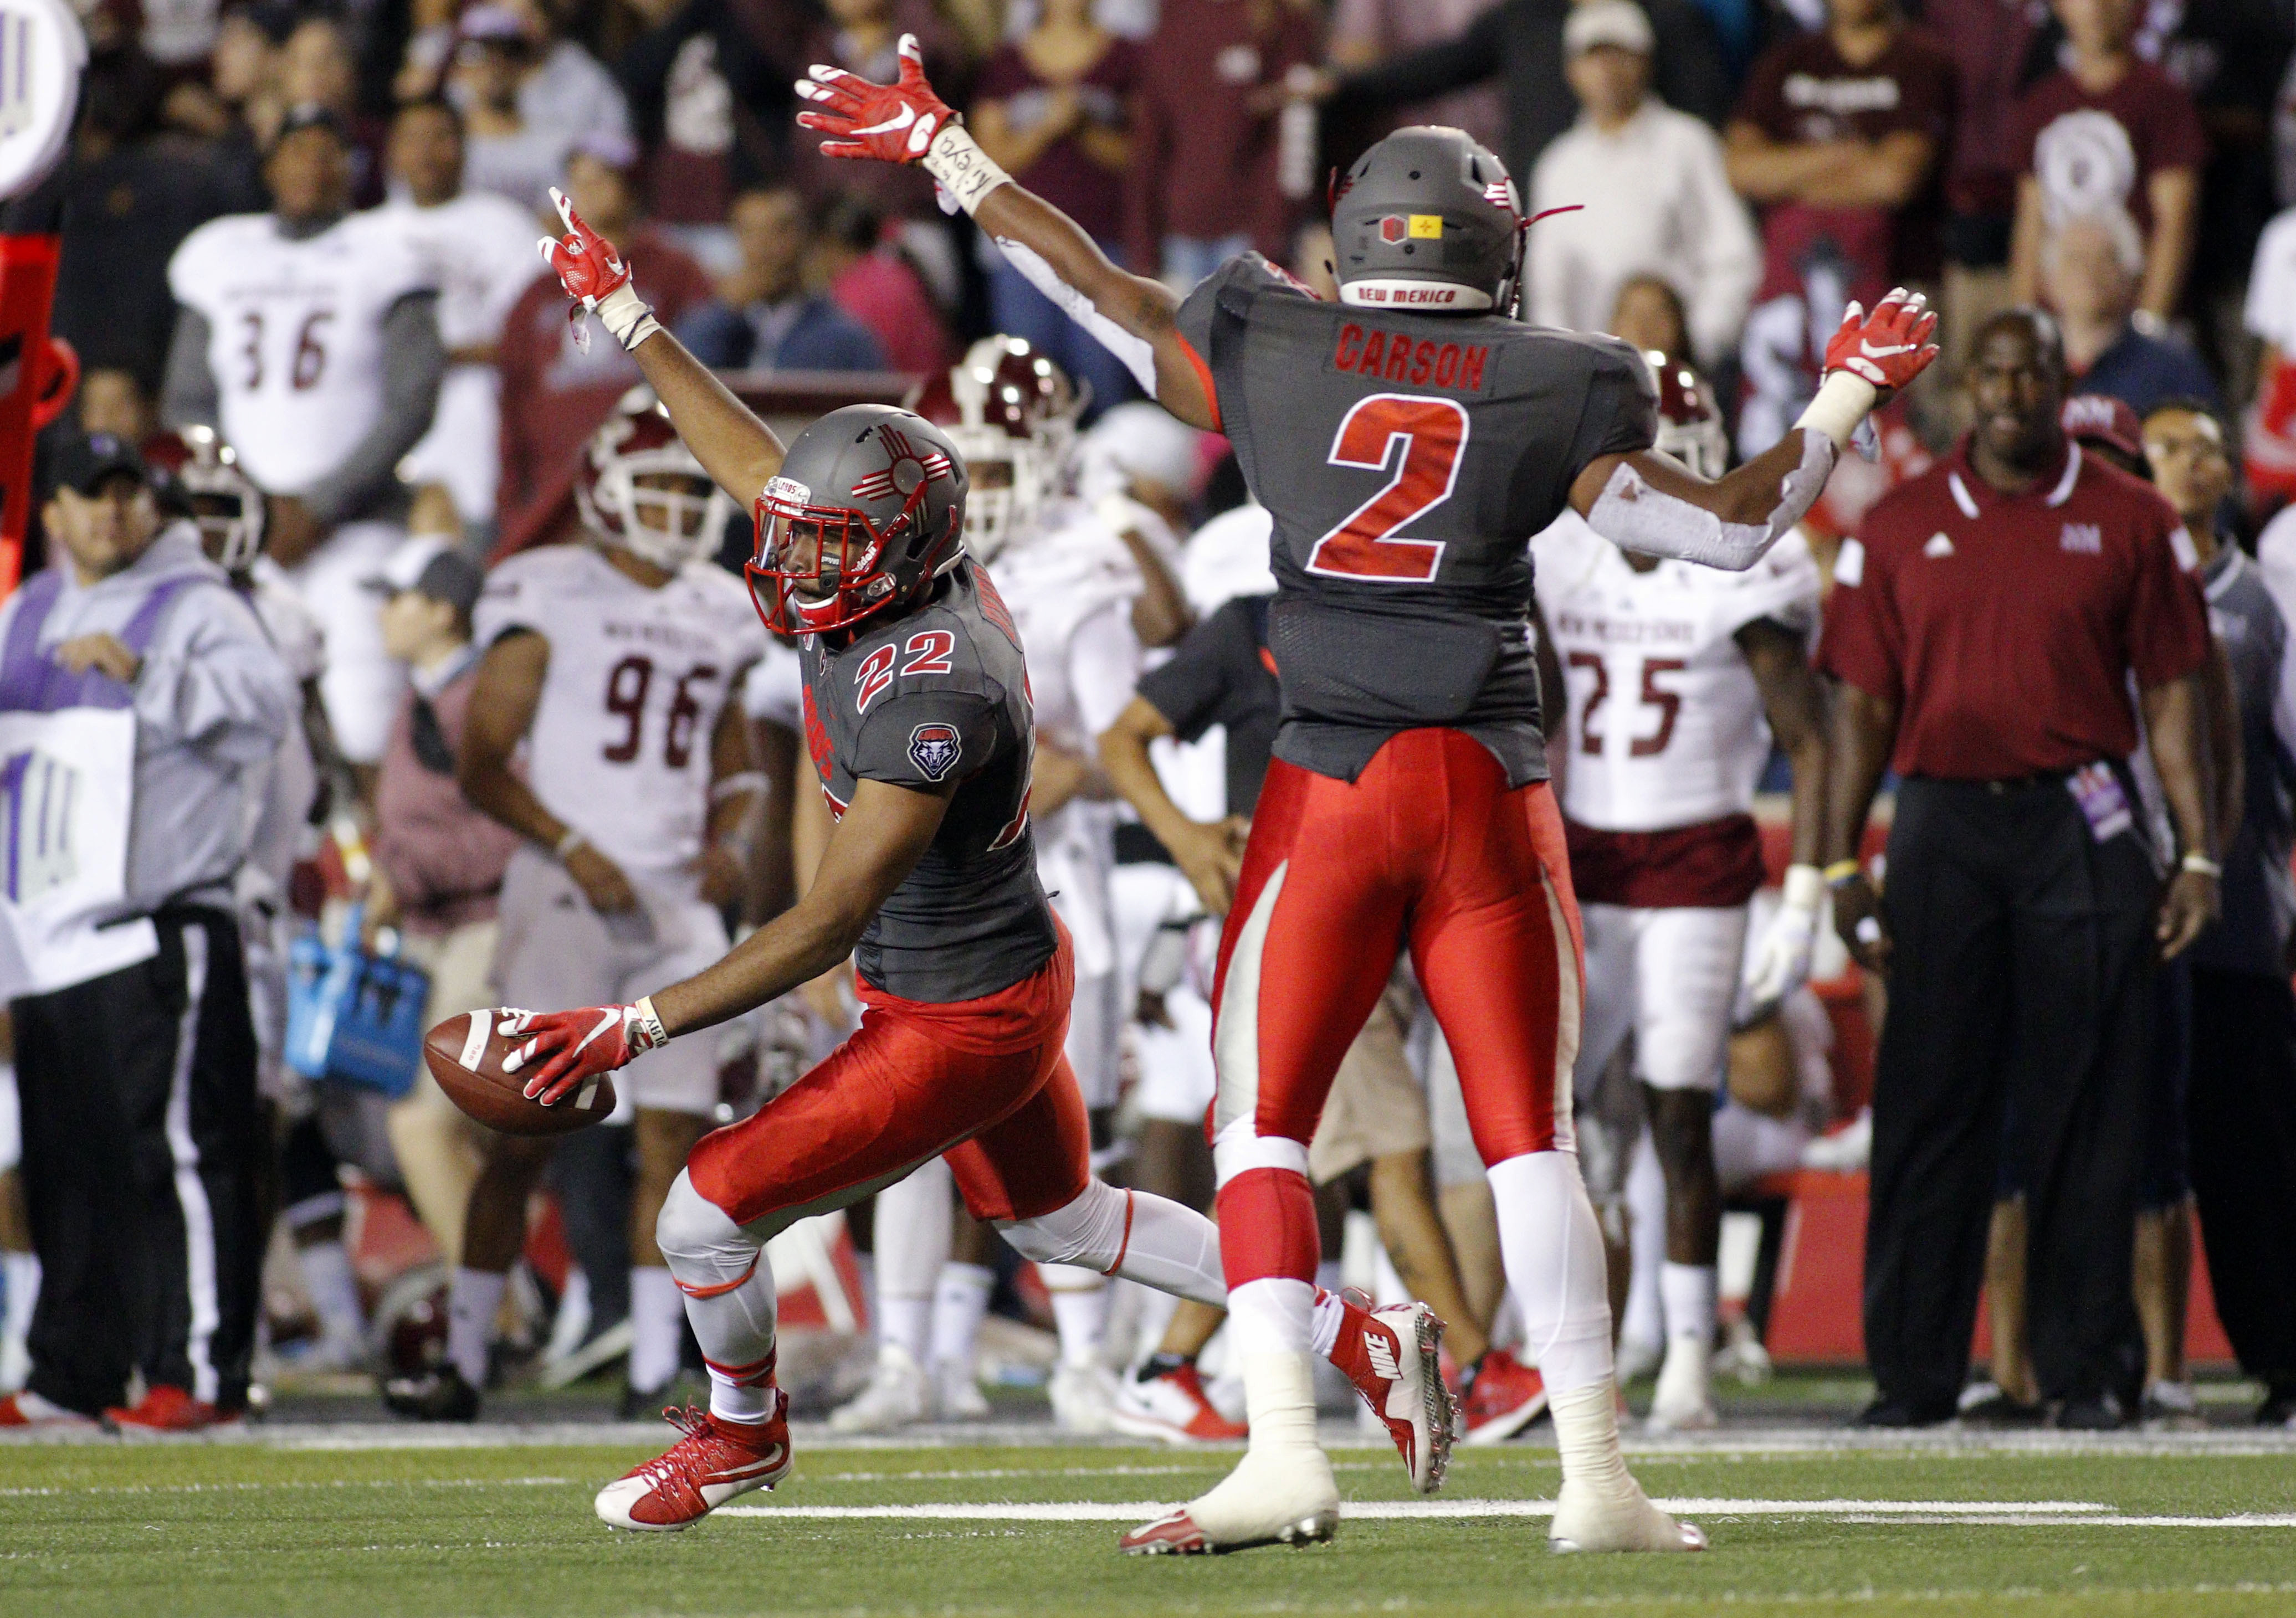 New Mexico safety Markel Byrd (22) celebrates with linebacker Kimmie Carson (2) after an interception during the second half of an NCAA college football game in Albuquerque, N.M., Saturday, Oct. 3, 2015. New Mexico won 38-29. (AP Photo/Andres Leighton)